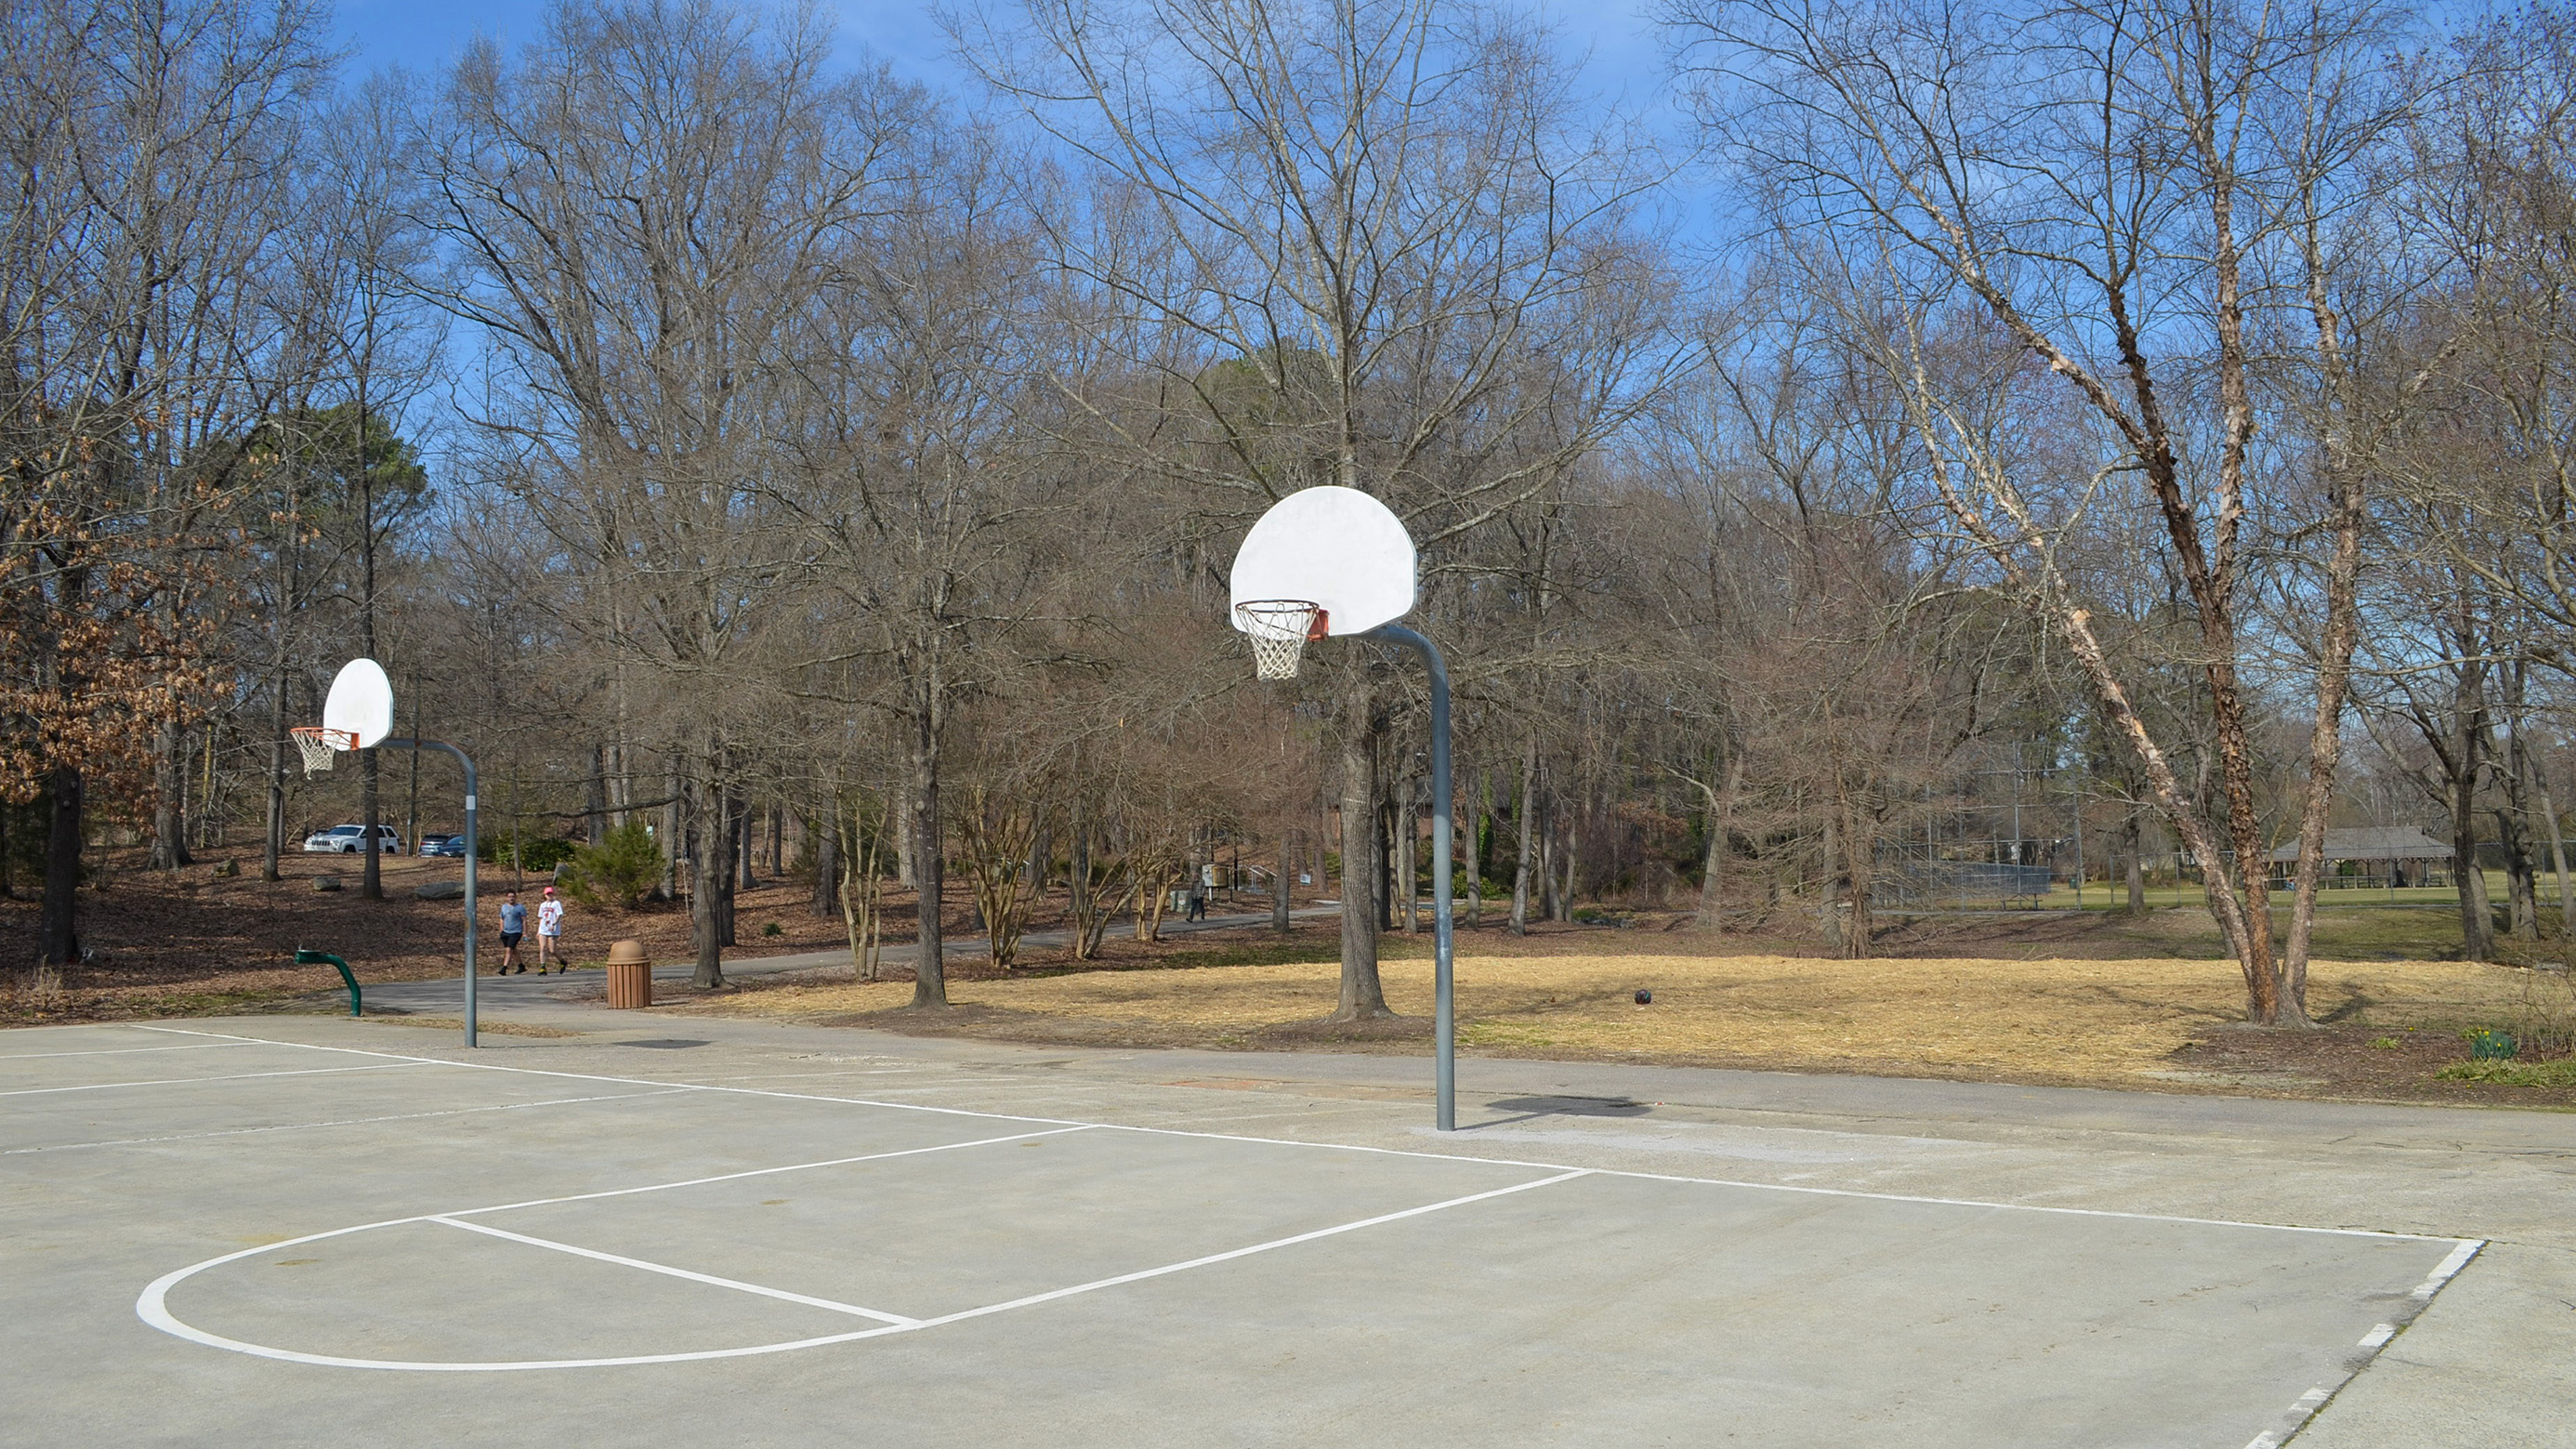 Boys playing at the outdoor basketball courts at Brentwood